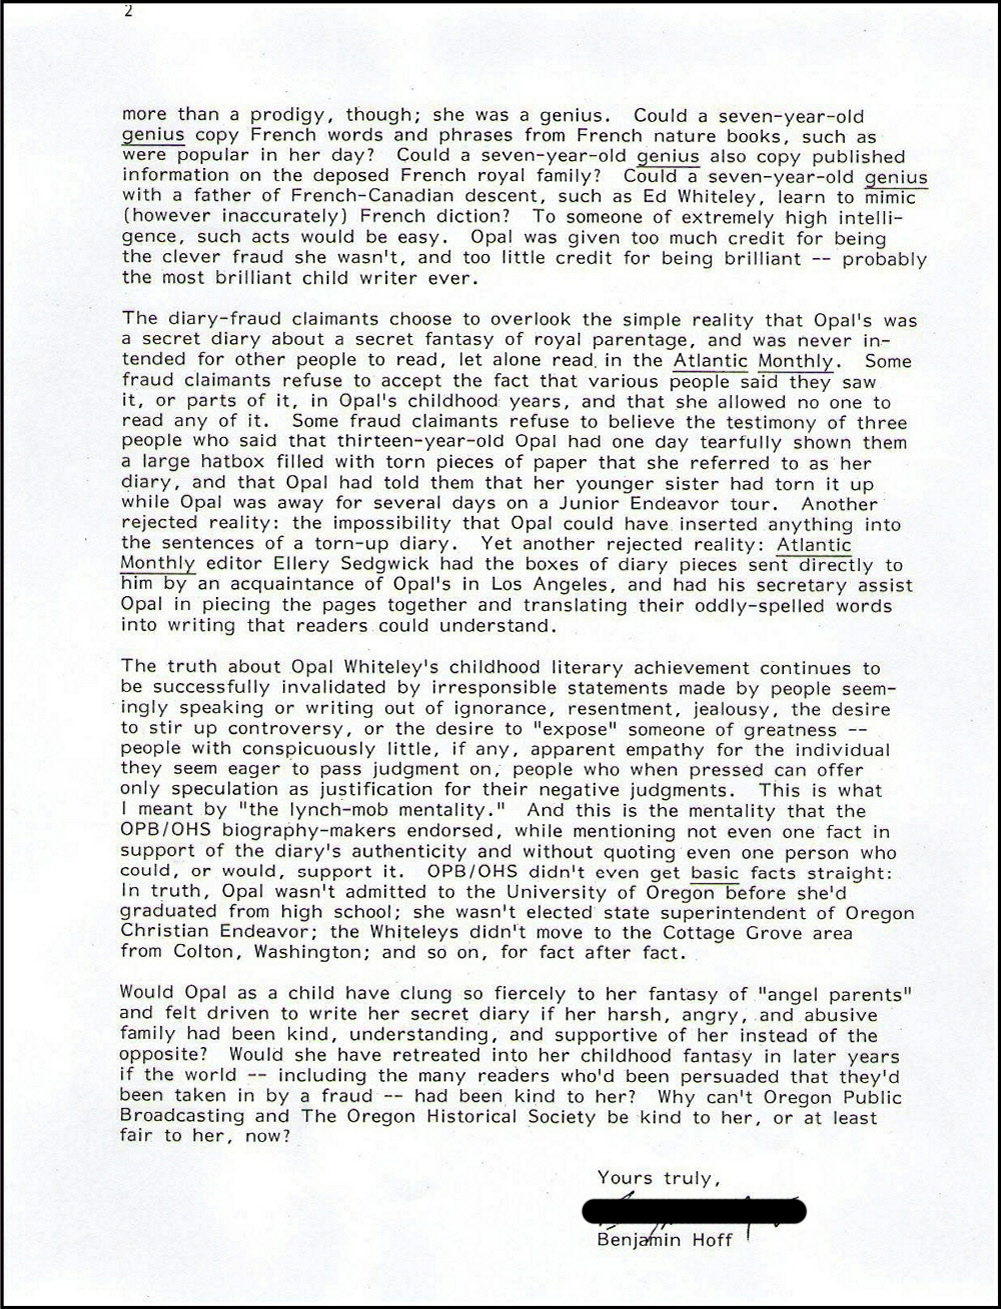 Letter from Benjamin Hoff to OPB May 2010, page 2